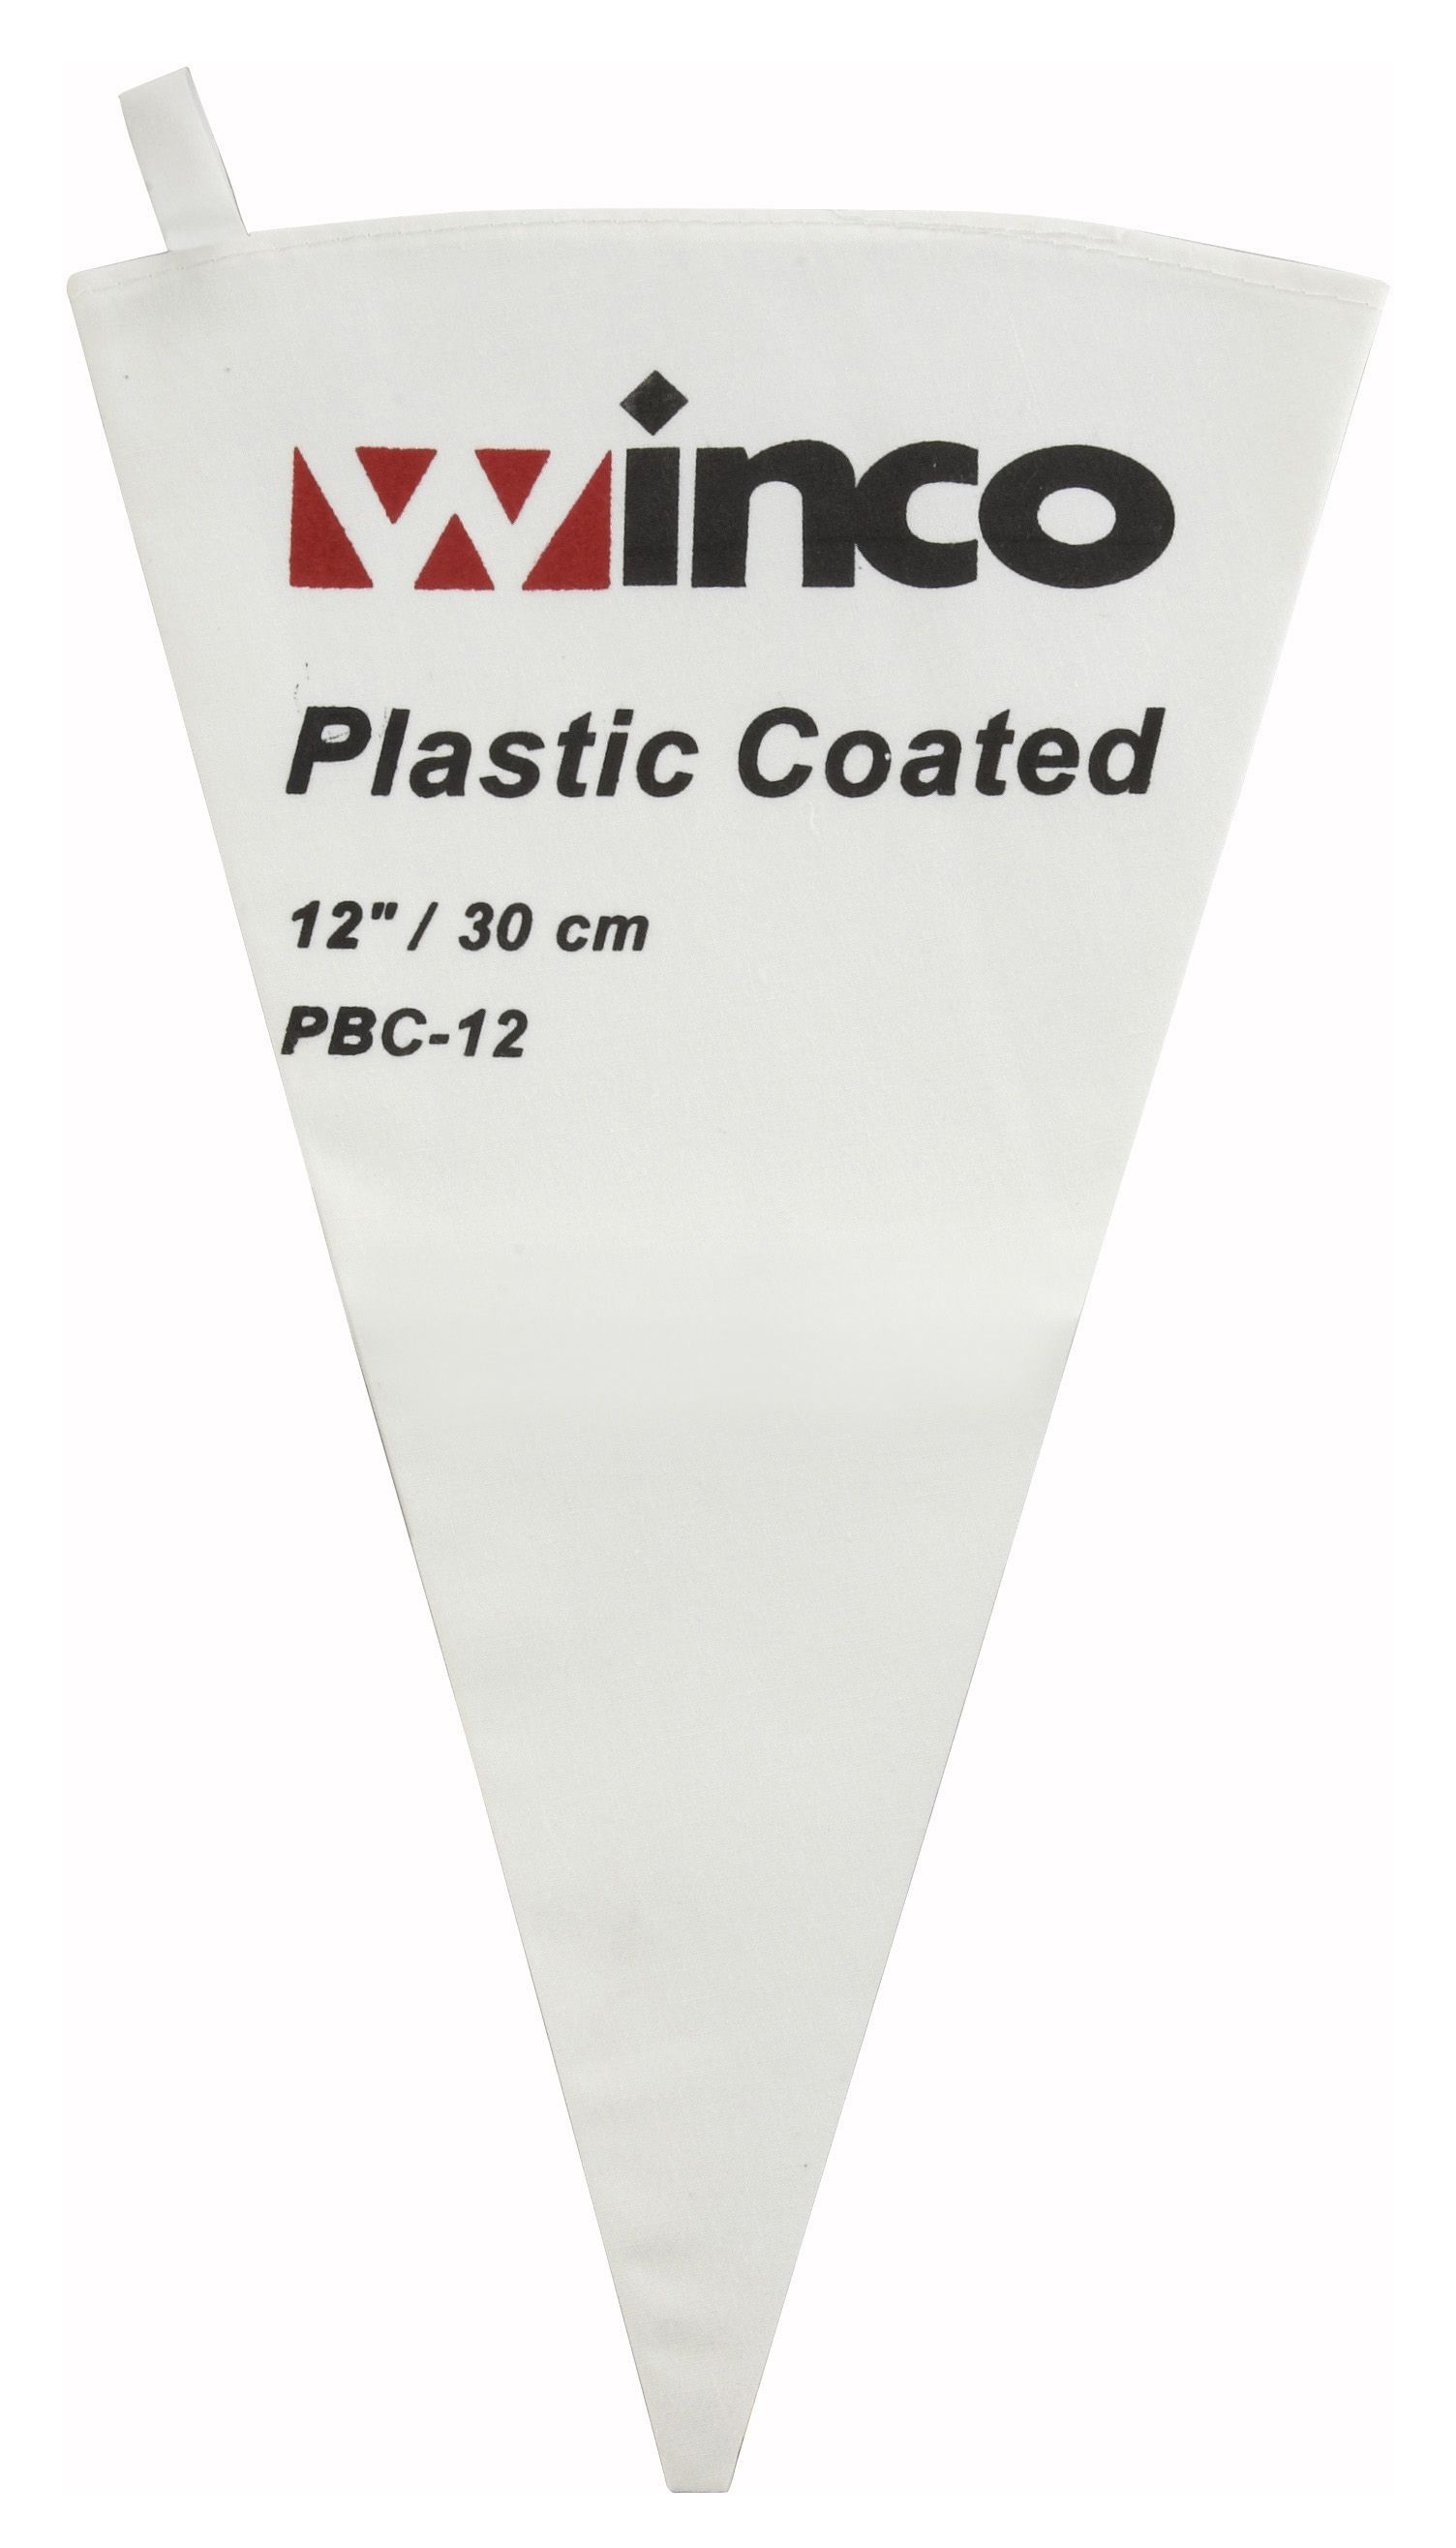 Winco PBC-12 Cotton Pastry Bag with Inner Plastic Coating, 12""